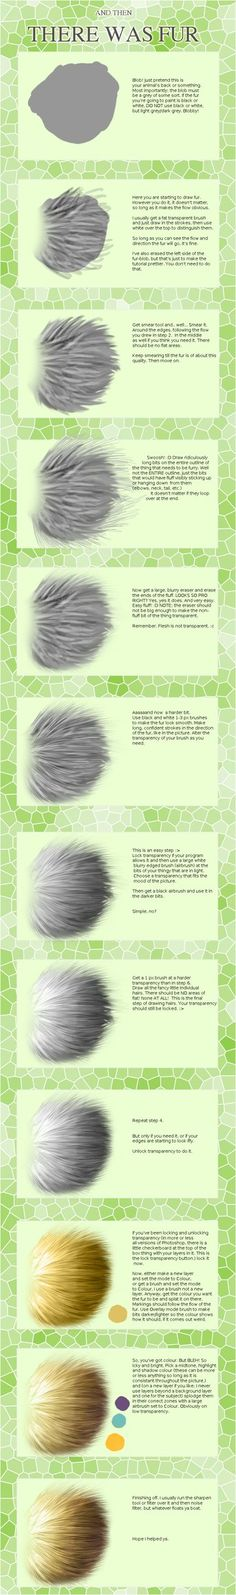 You, too, can draw painstakingly detailed fur in under twelve hours! :D I kid, I kid If you make something with this tut as a guide, show me! 2012 edit: I was thirteen when I wrote this, please exc...